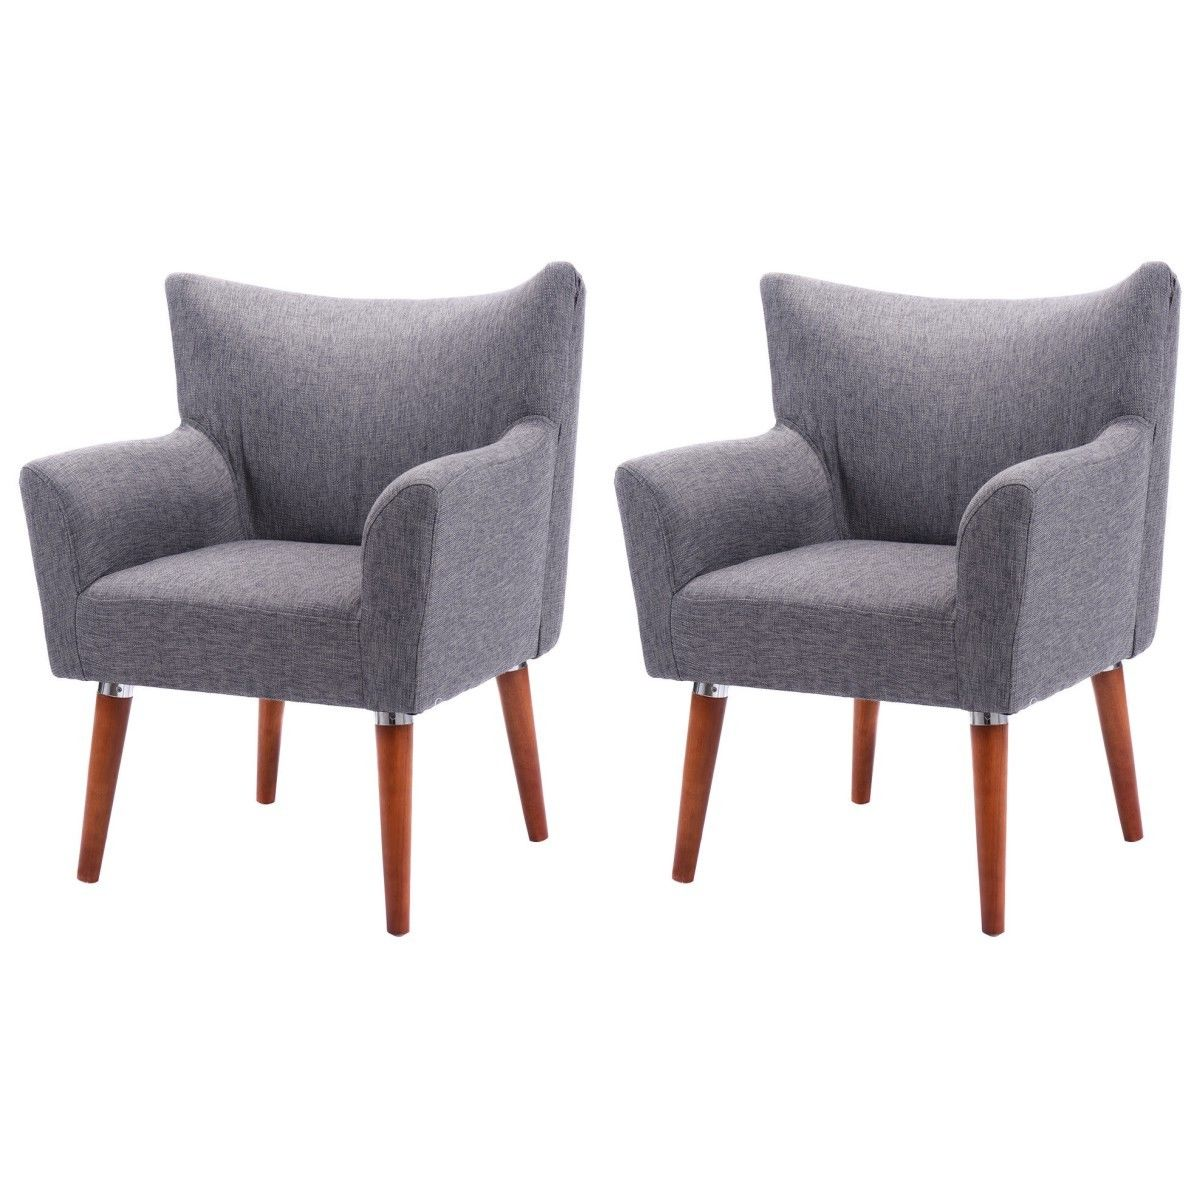 Giantex Set Of 2 Leisure Arm Chair Single Sofa Couch Seat